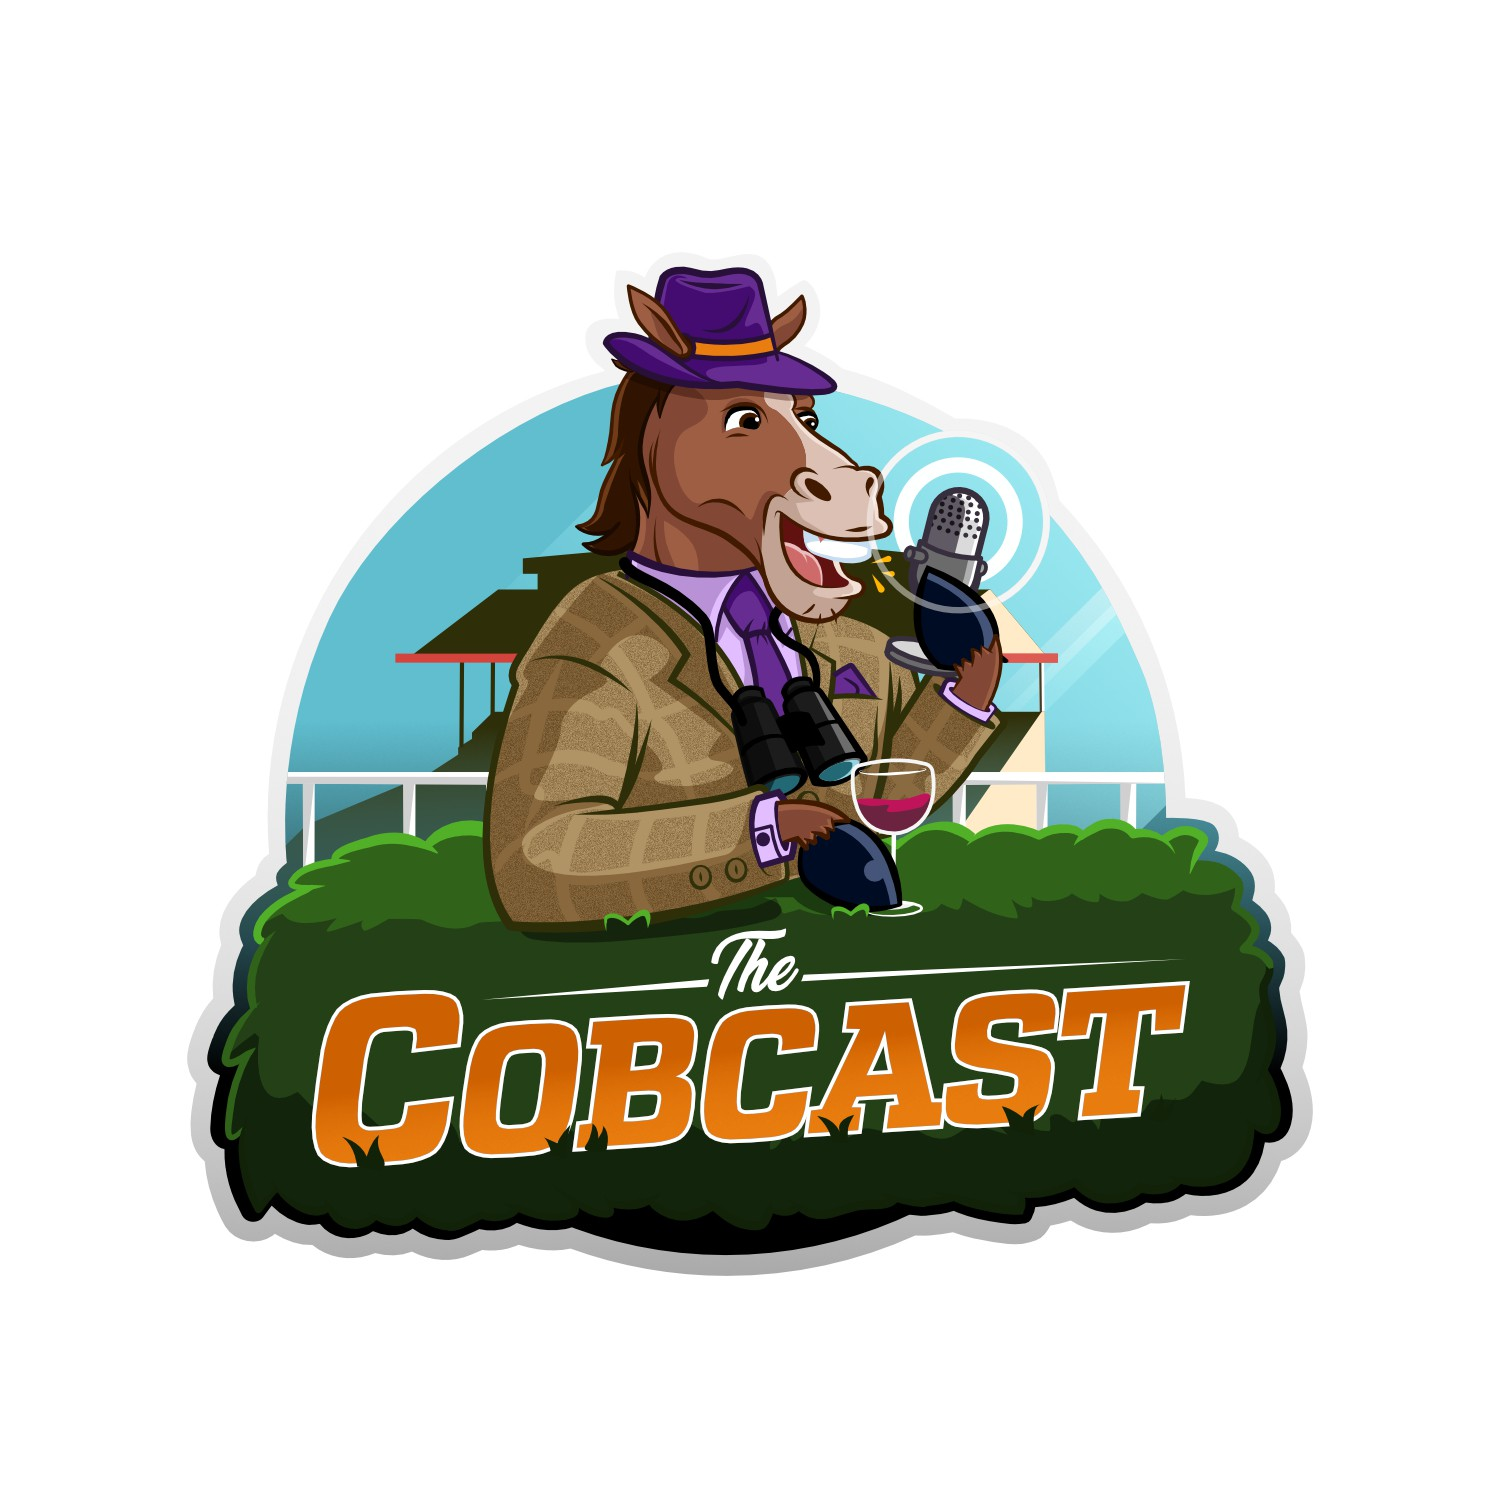 Sleek Podcast Logo with Horse Racing Theme